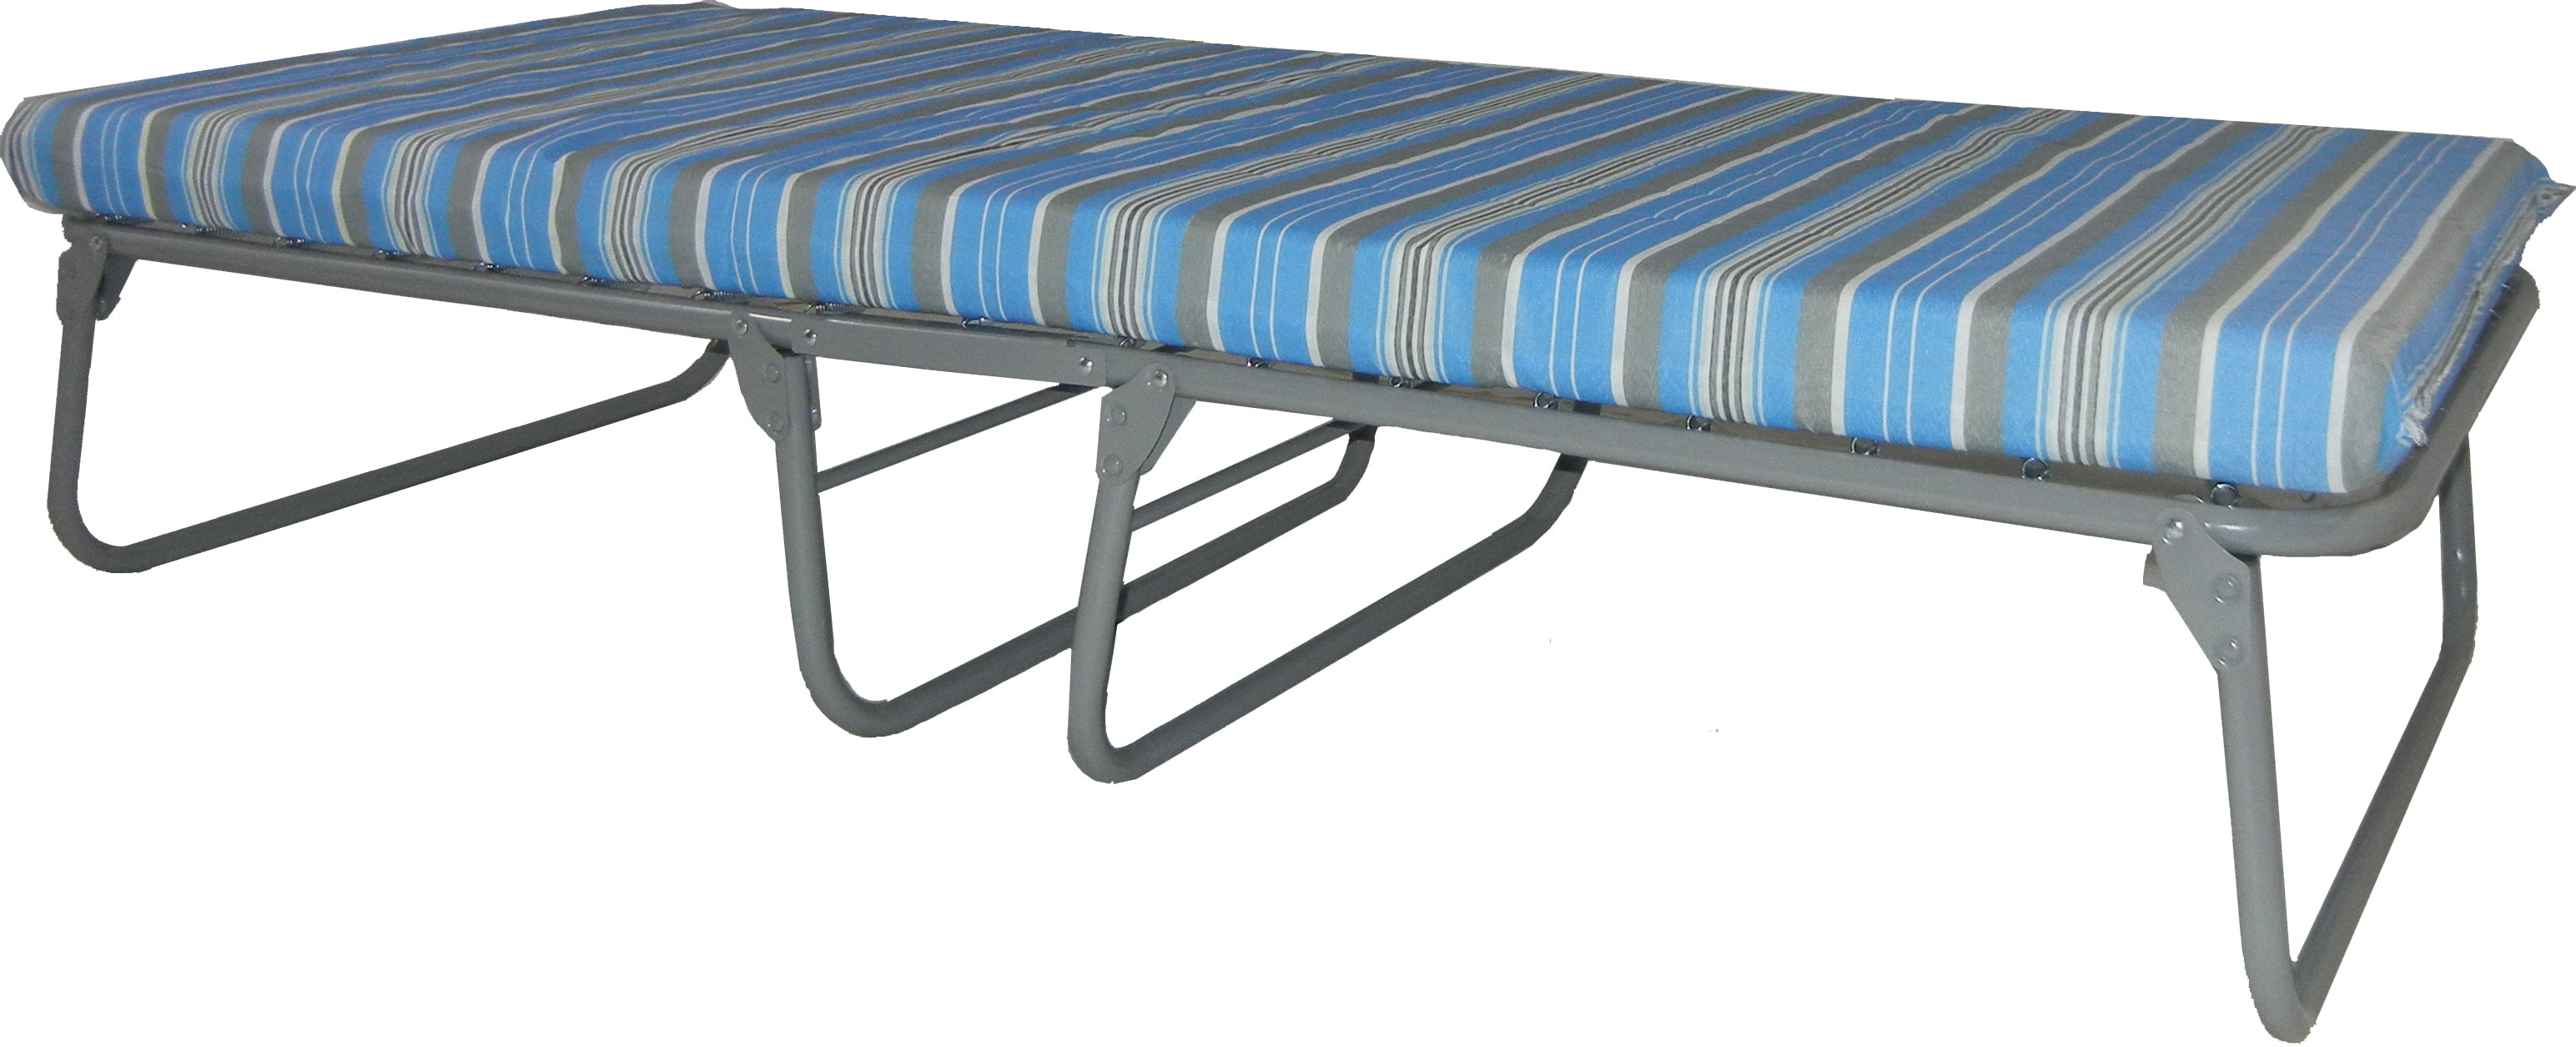 Blantex Heavy Duty Steel Folding Cot 375 Pound Capacity